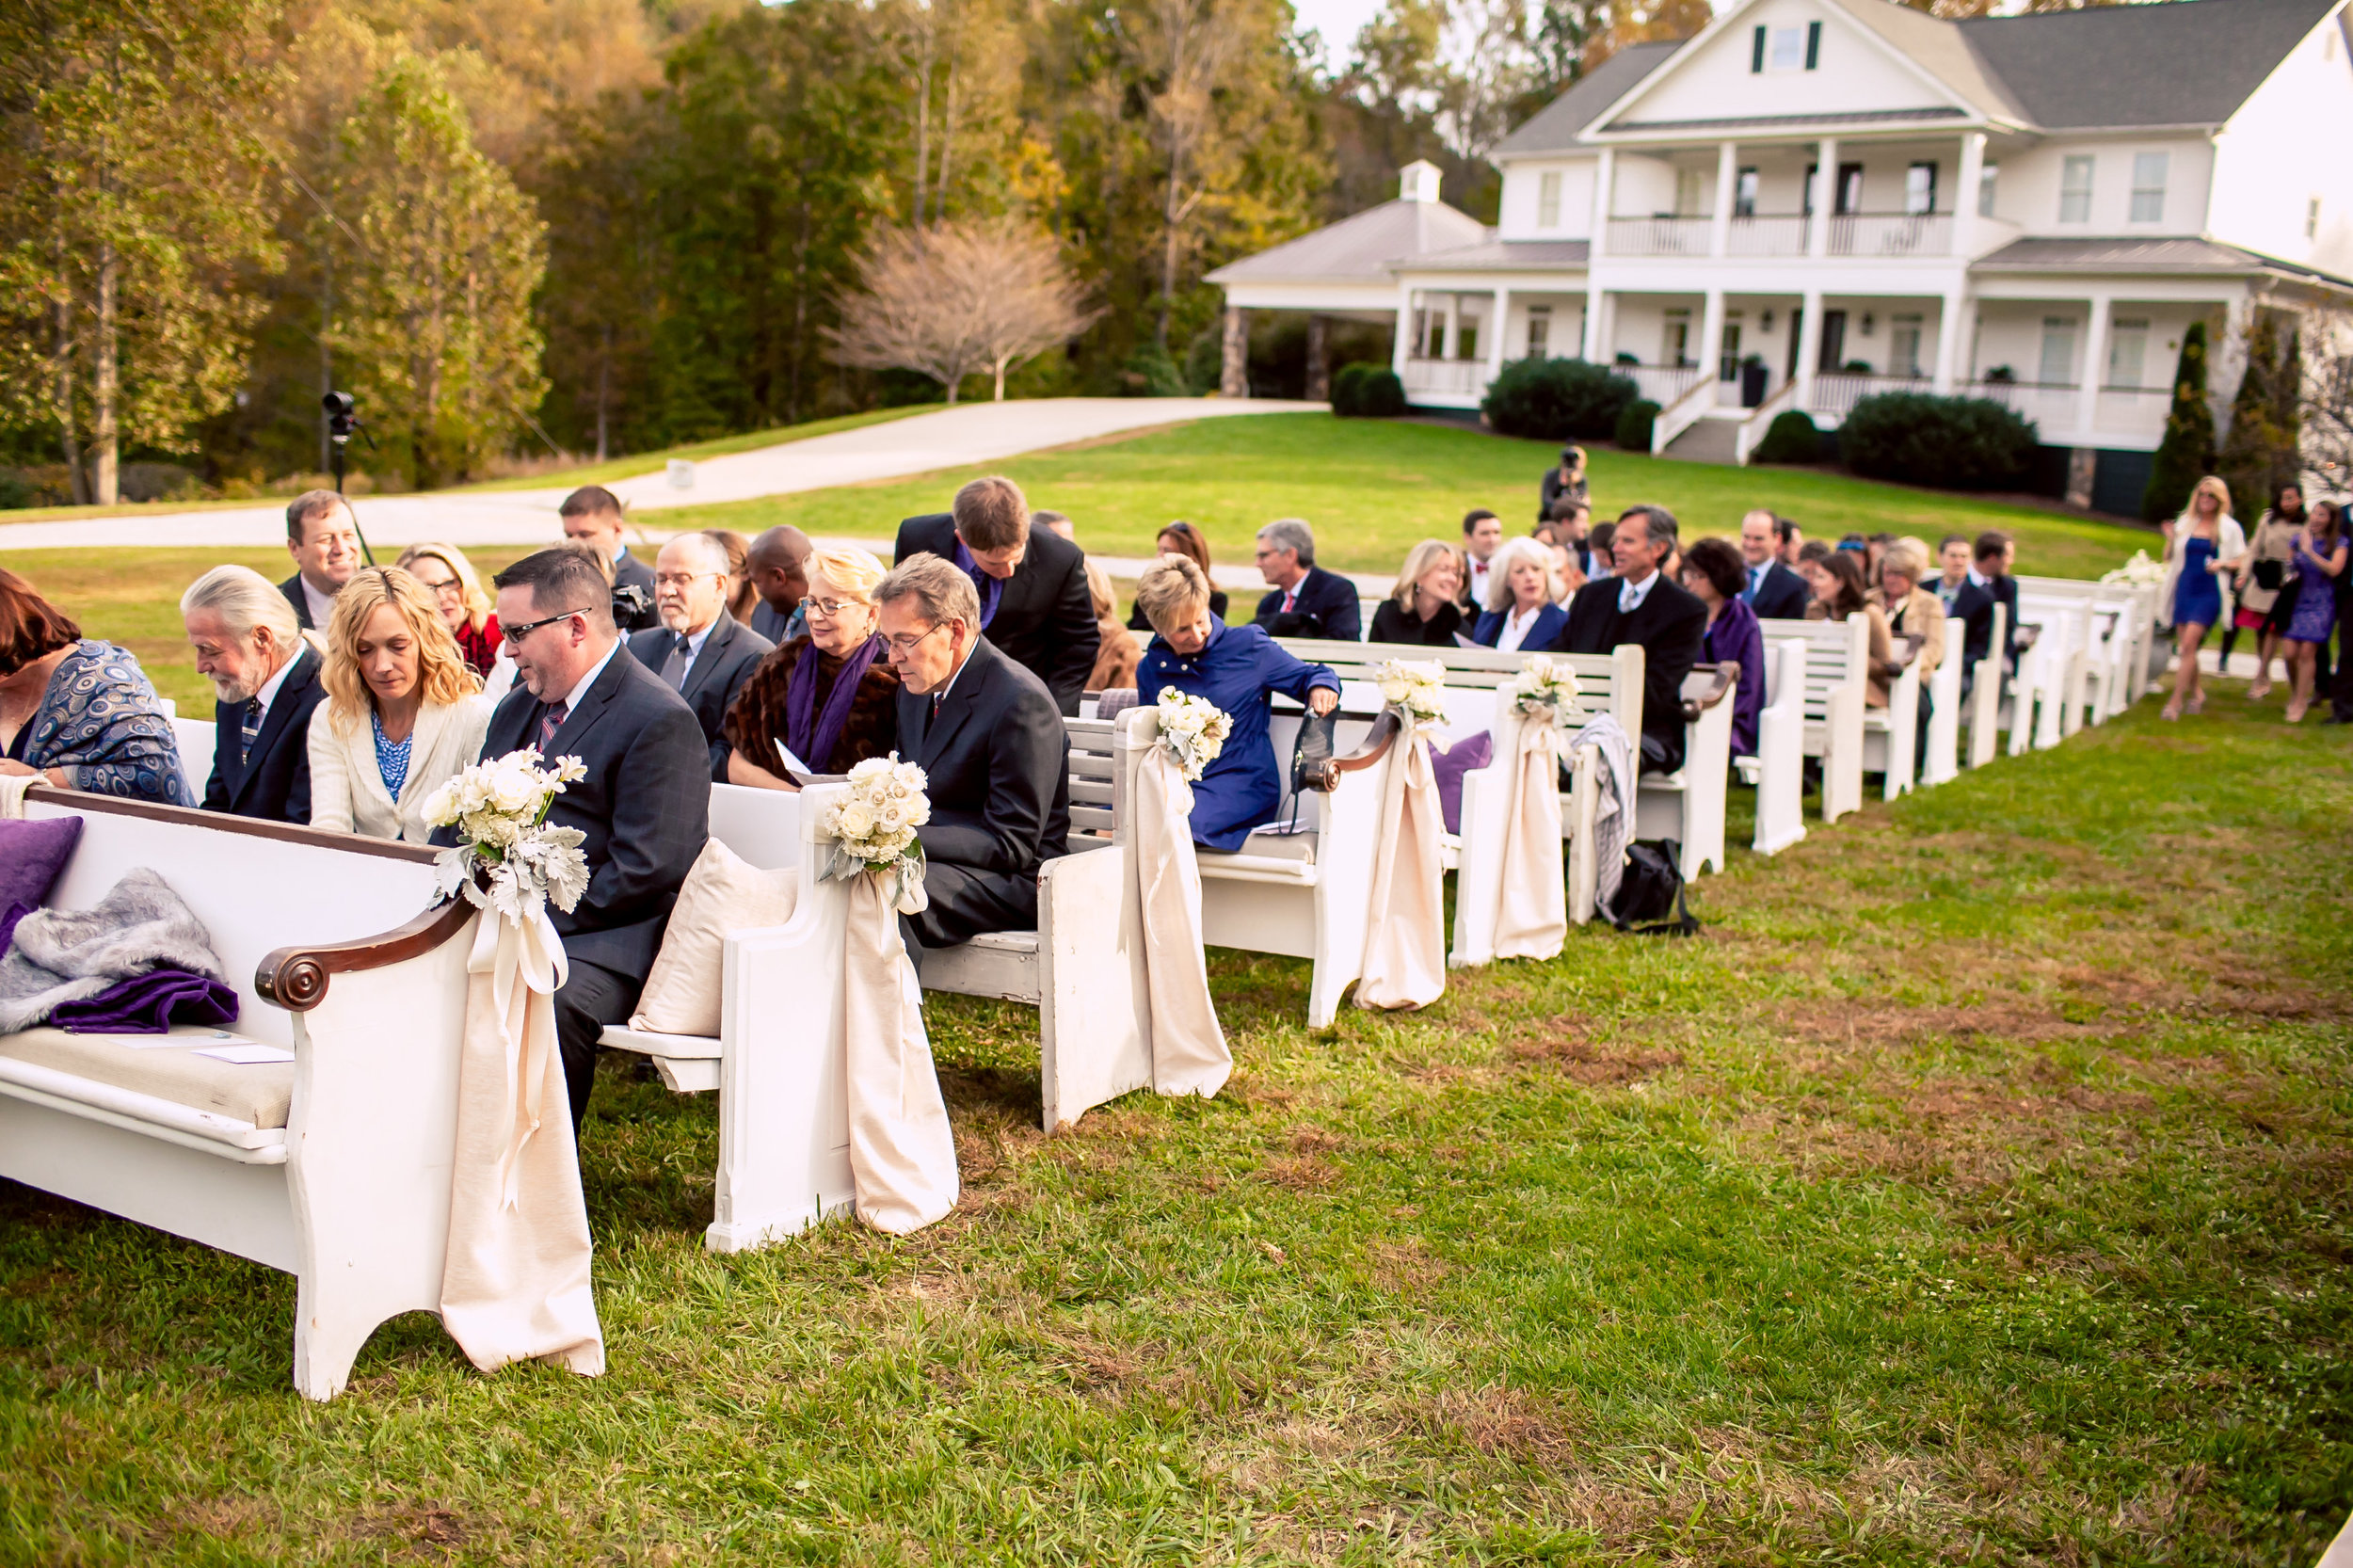 Georgia outdoor wedding with church pews. P.E.W.S. www.rentpews.com. Photographed by www.oncelikeaspark.com.